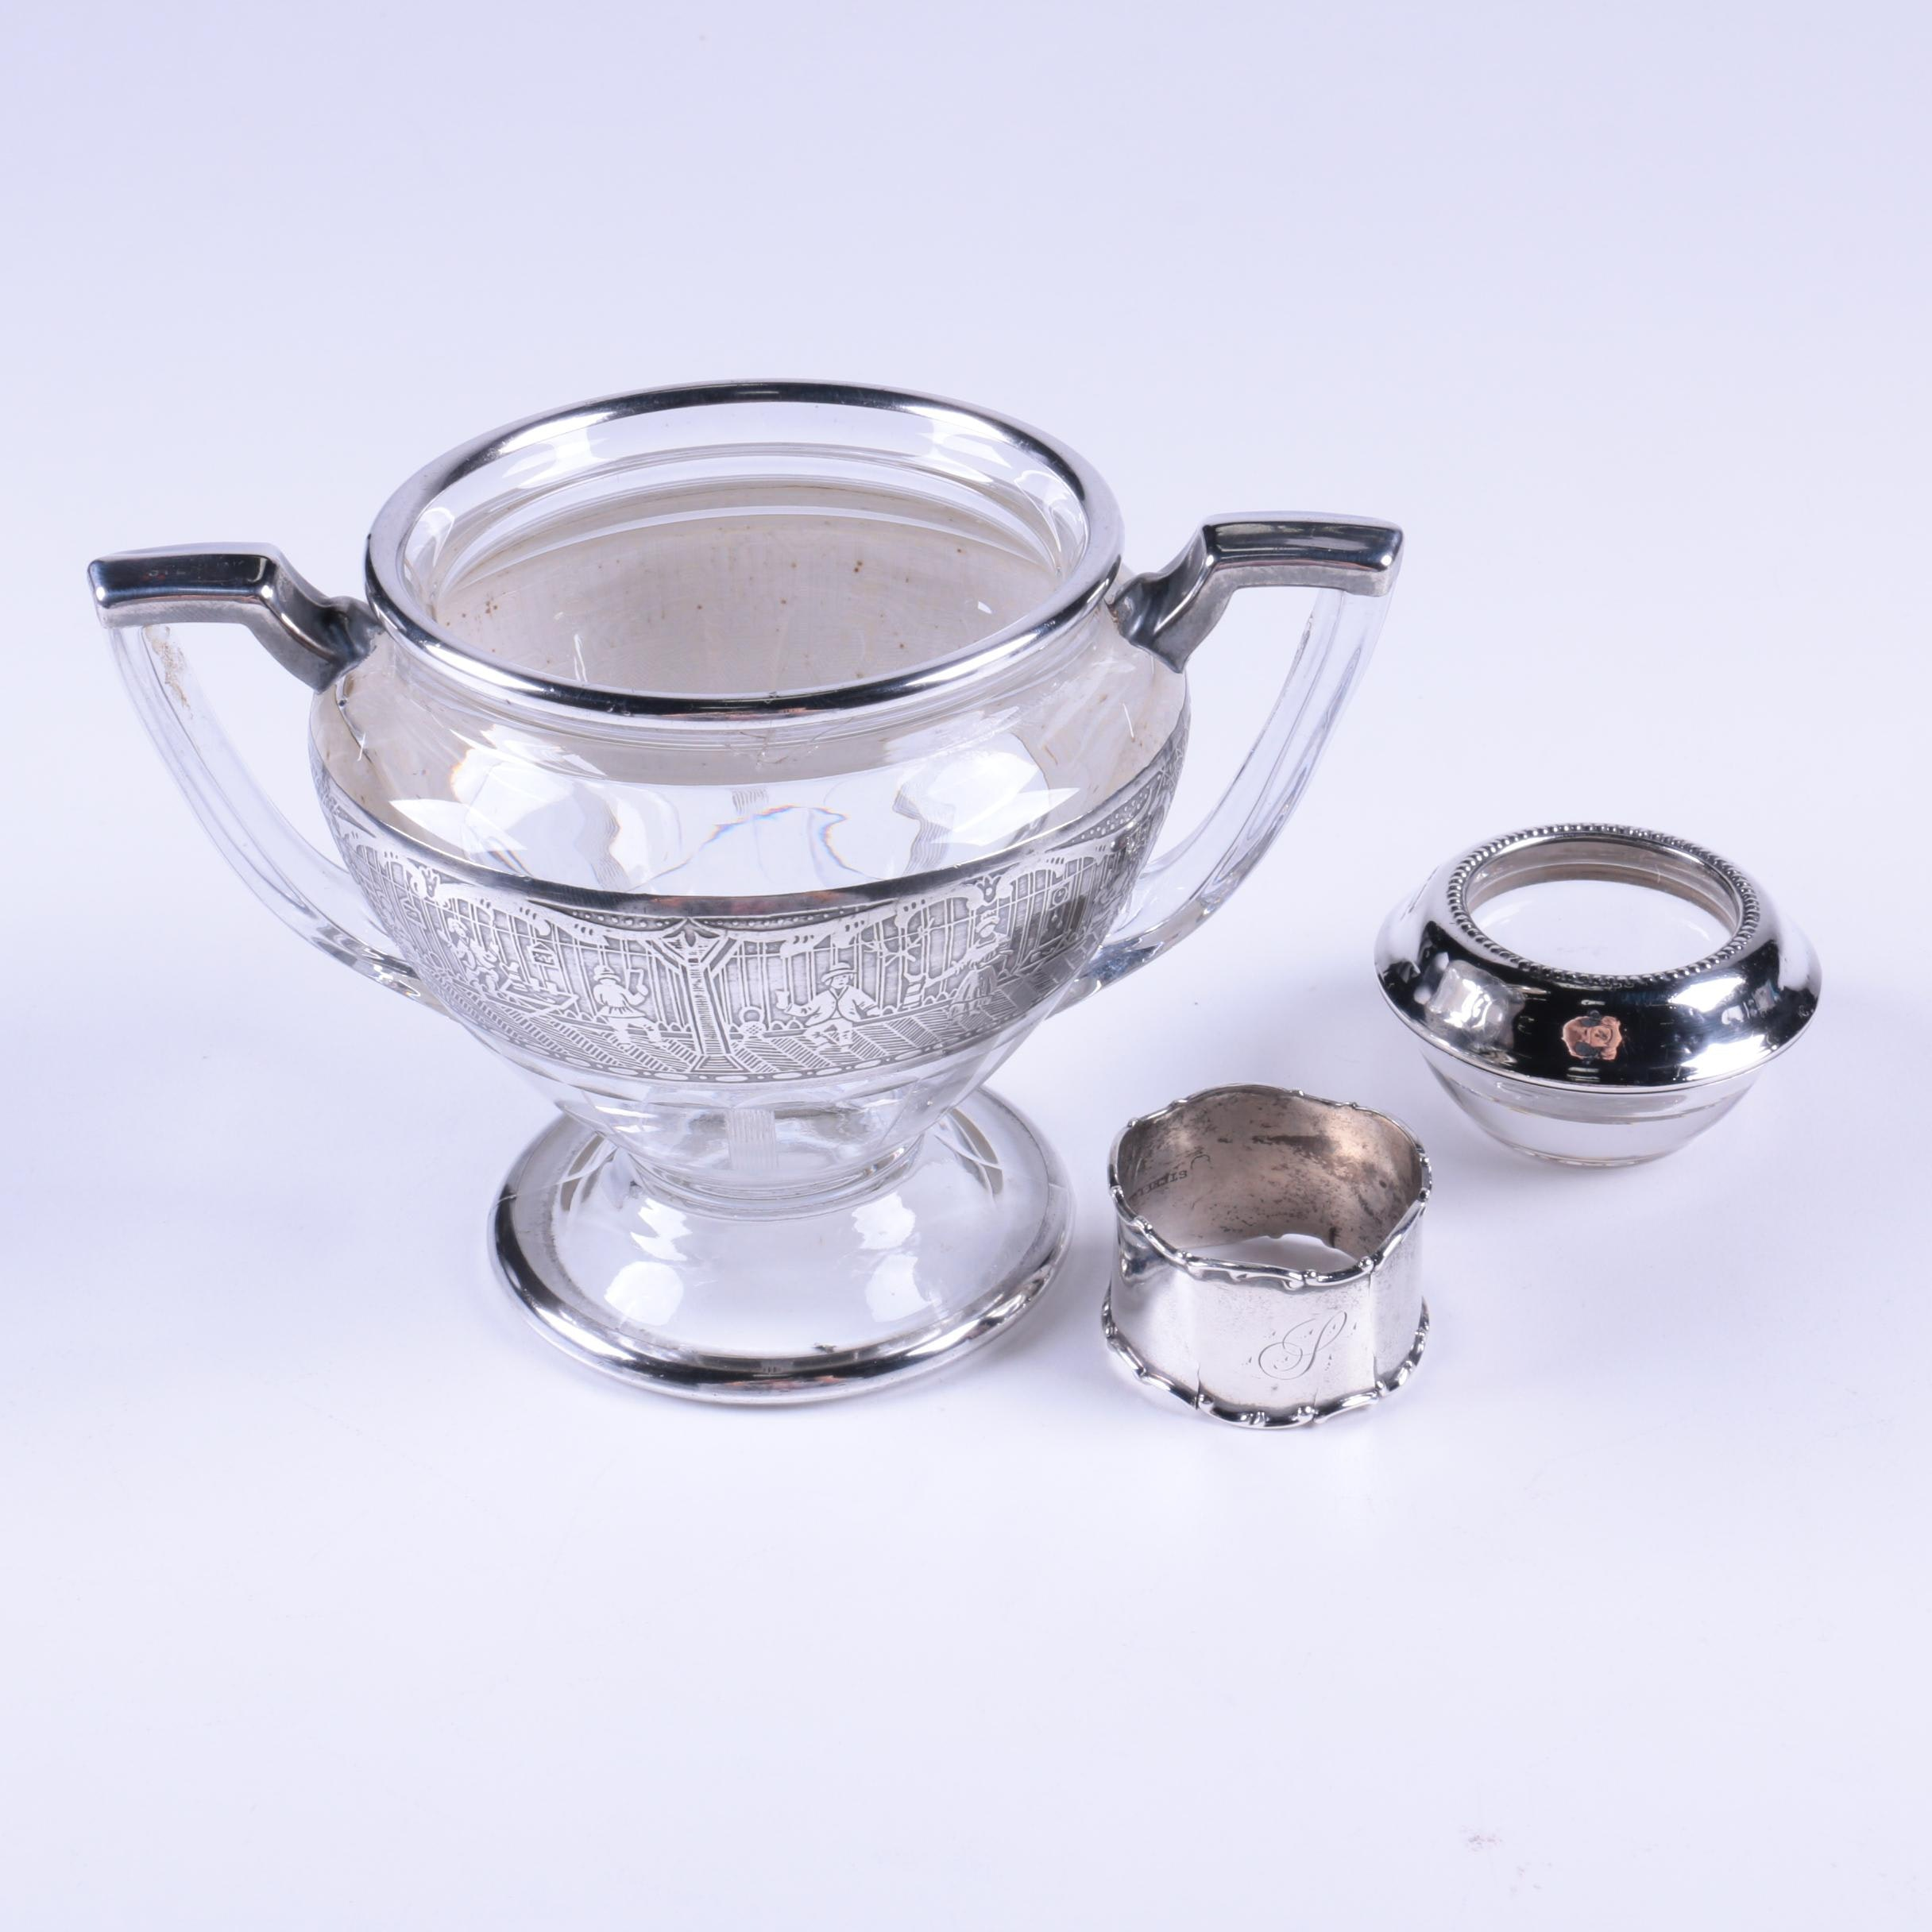 Frank M. Whiting Sterling Silver Candlestick Holder and Other Tableware